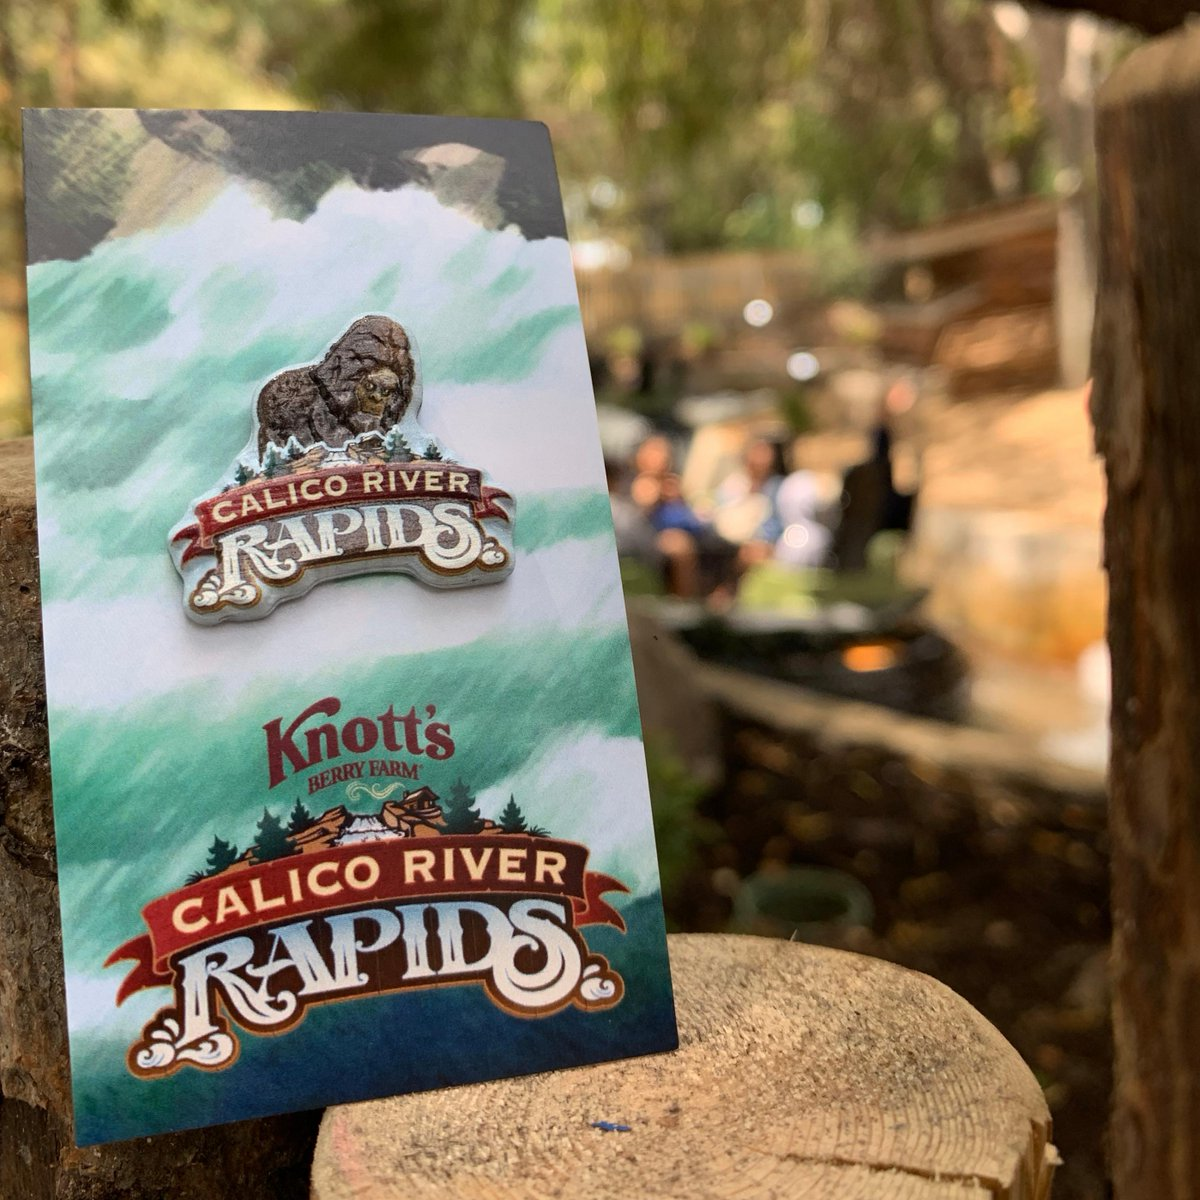 Knott S Berry Farm On Twitter Calicoriverrapids Is Open For Business Adventures Are Departing As We Speak Into Uncharted Territory Celebrate This Auspicious Occasion With The Limited Edition Collectors Pin Available At